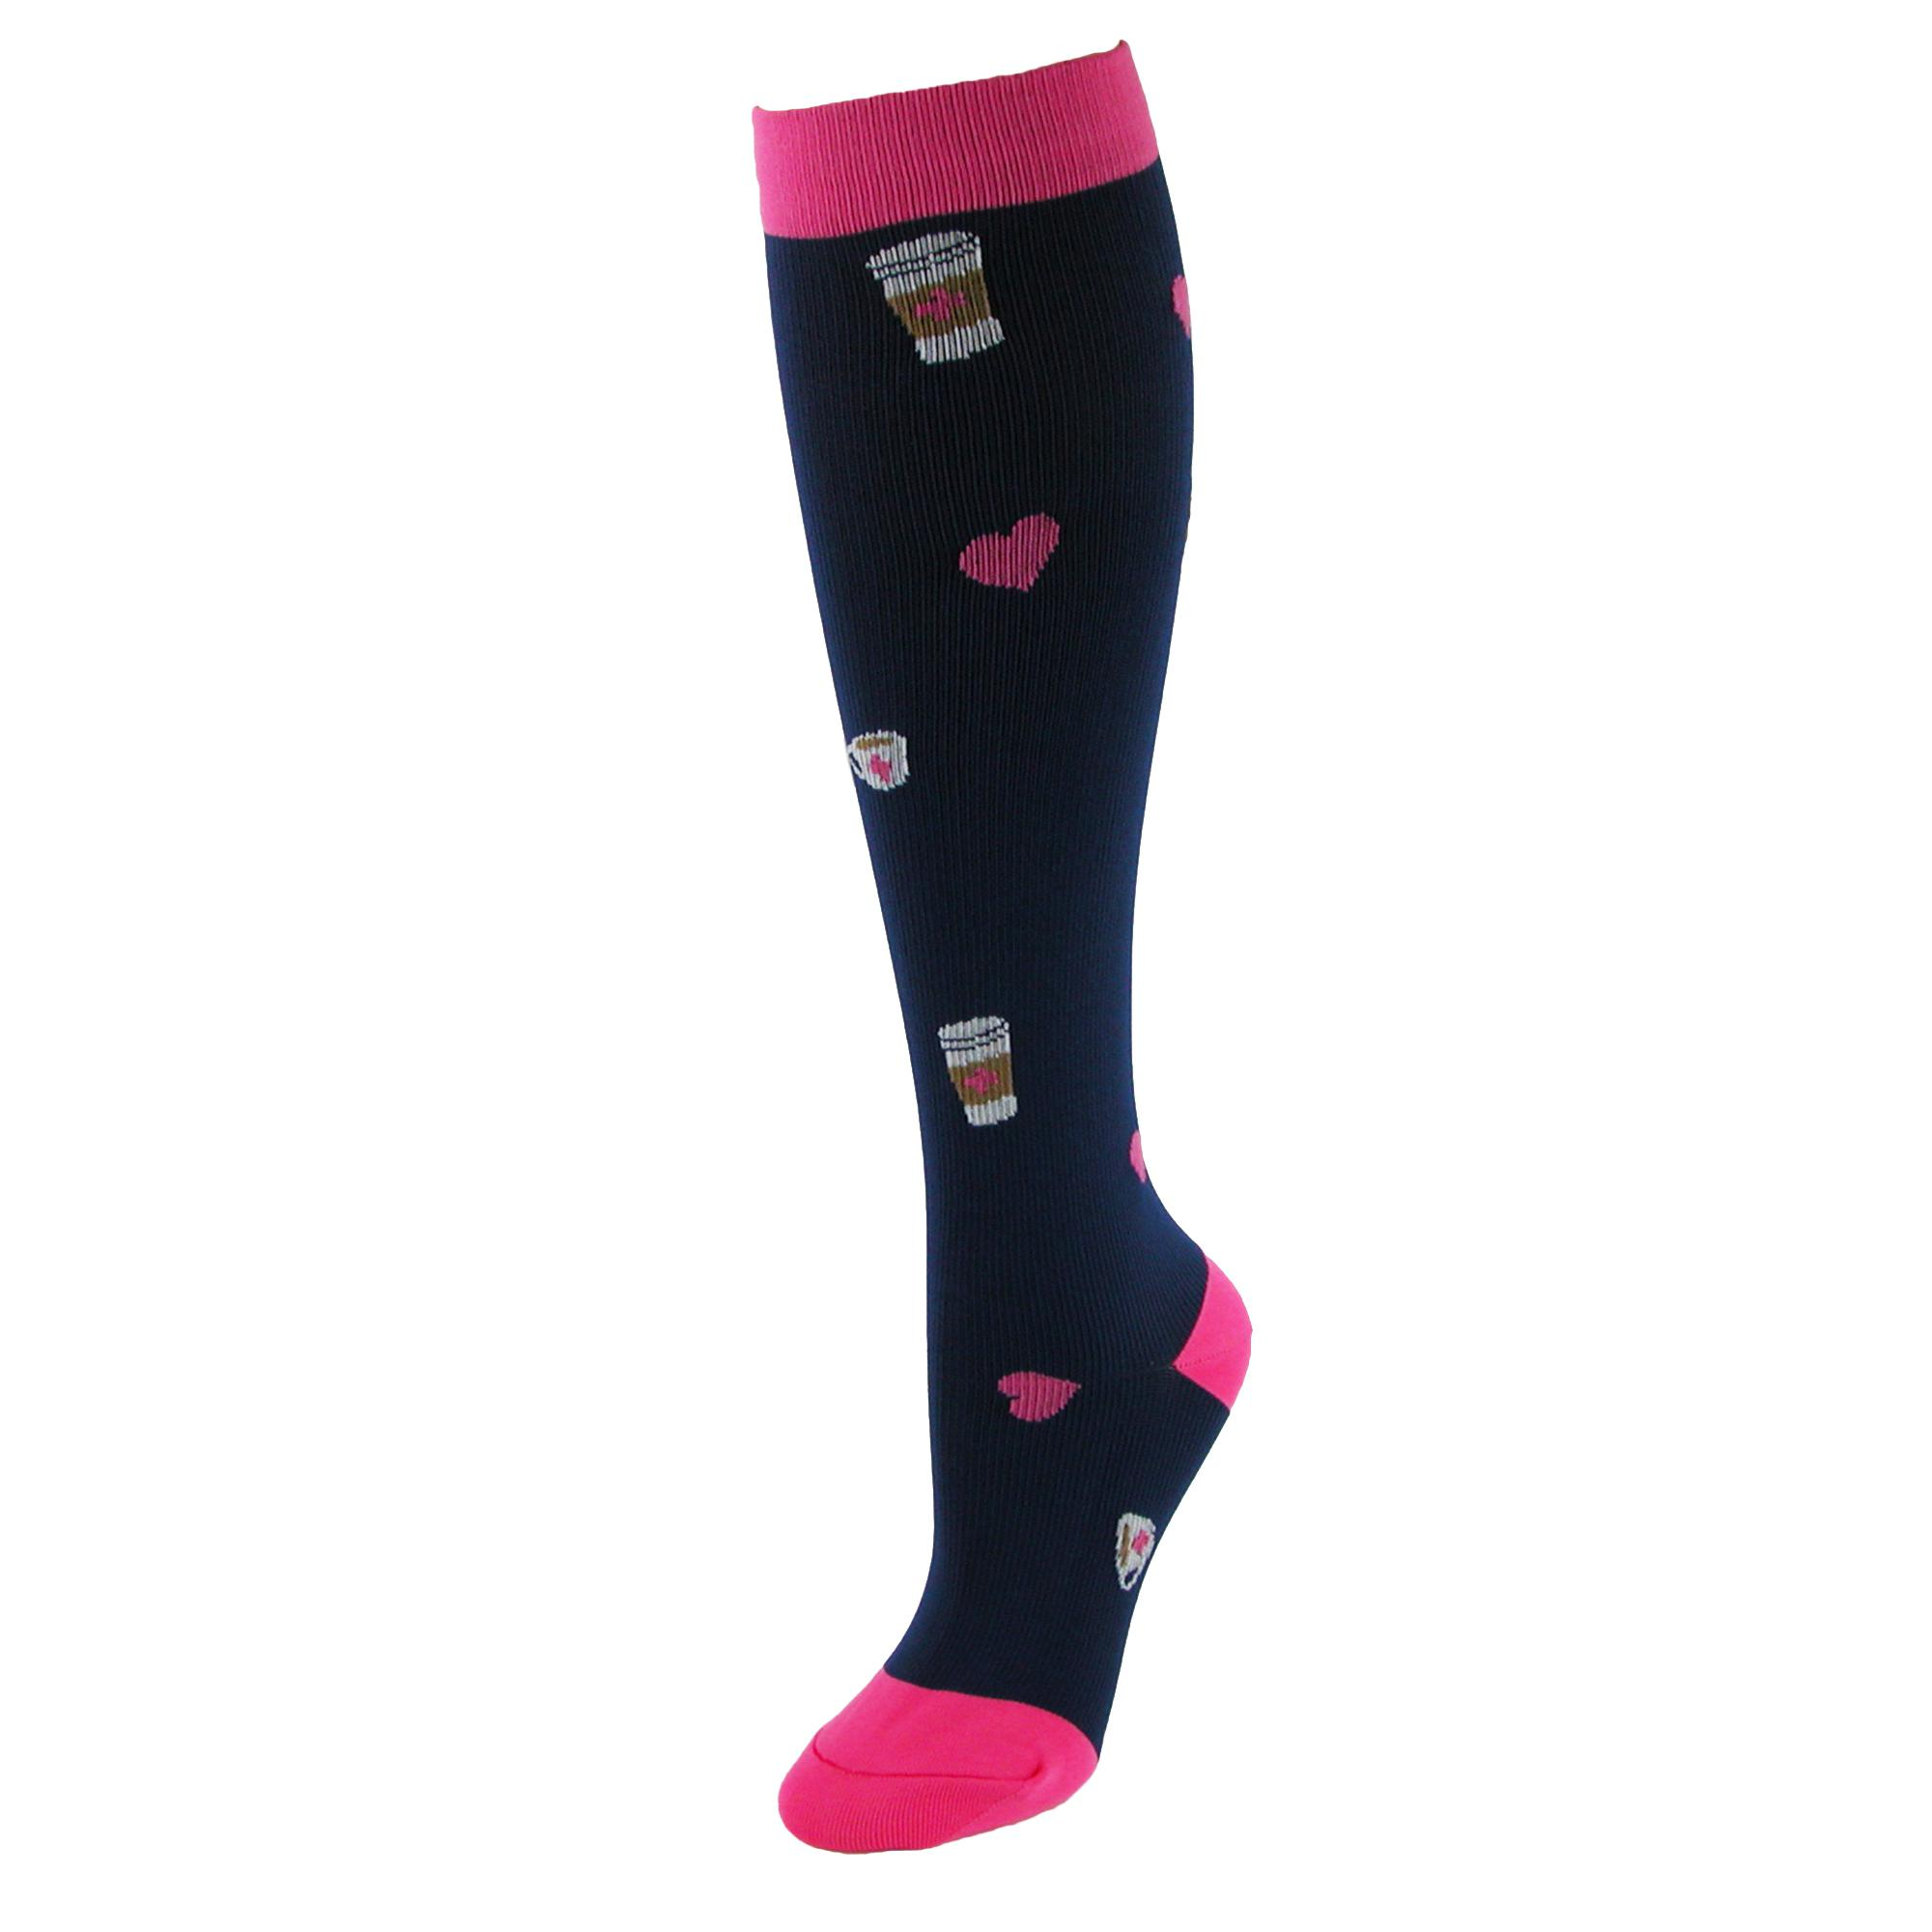 Think Medical Womens Hearts And Coffee Fashion Compression Socks